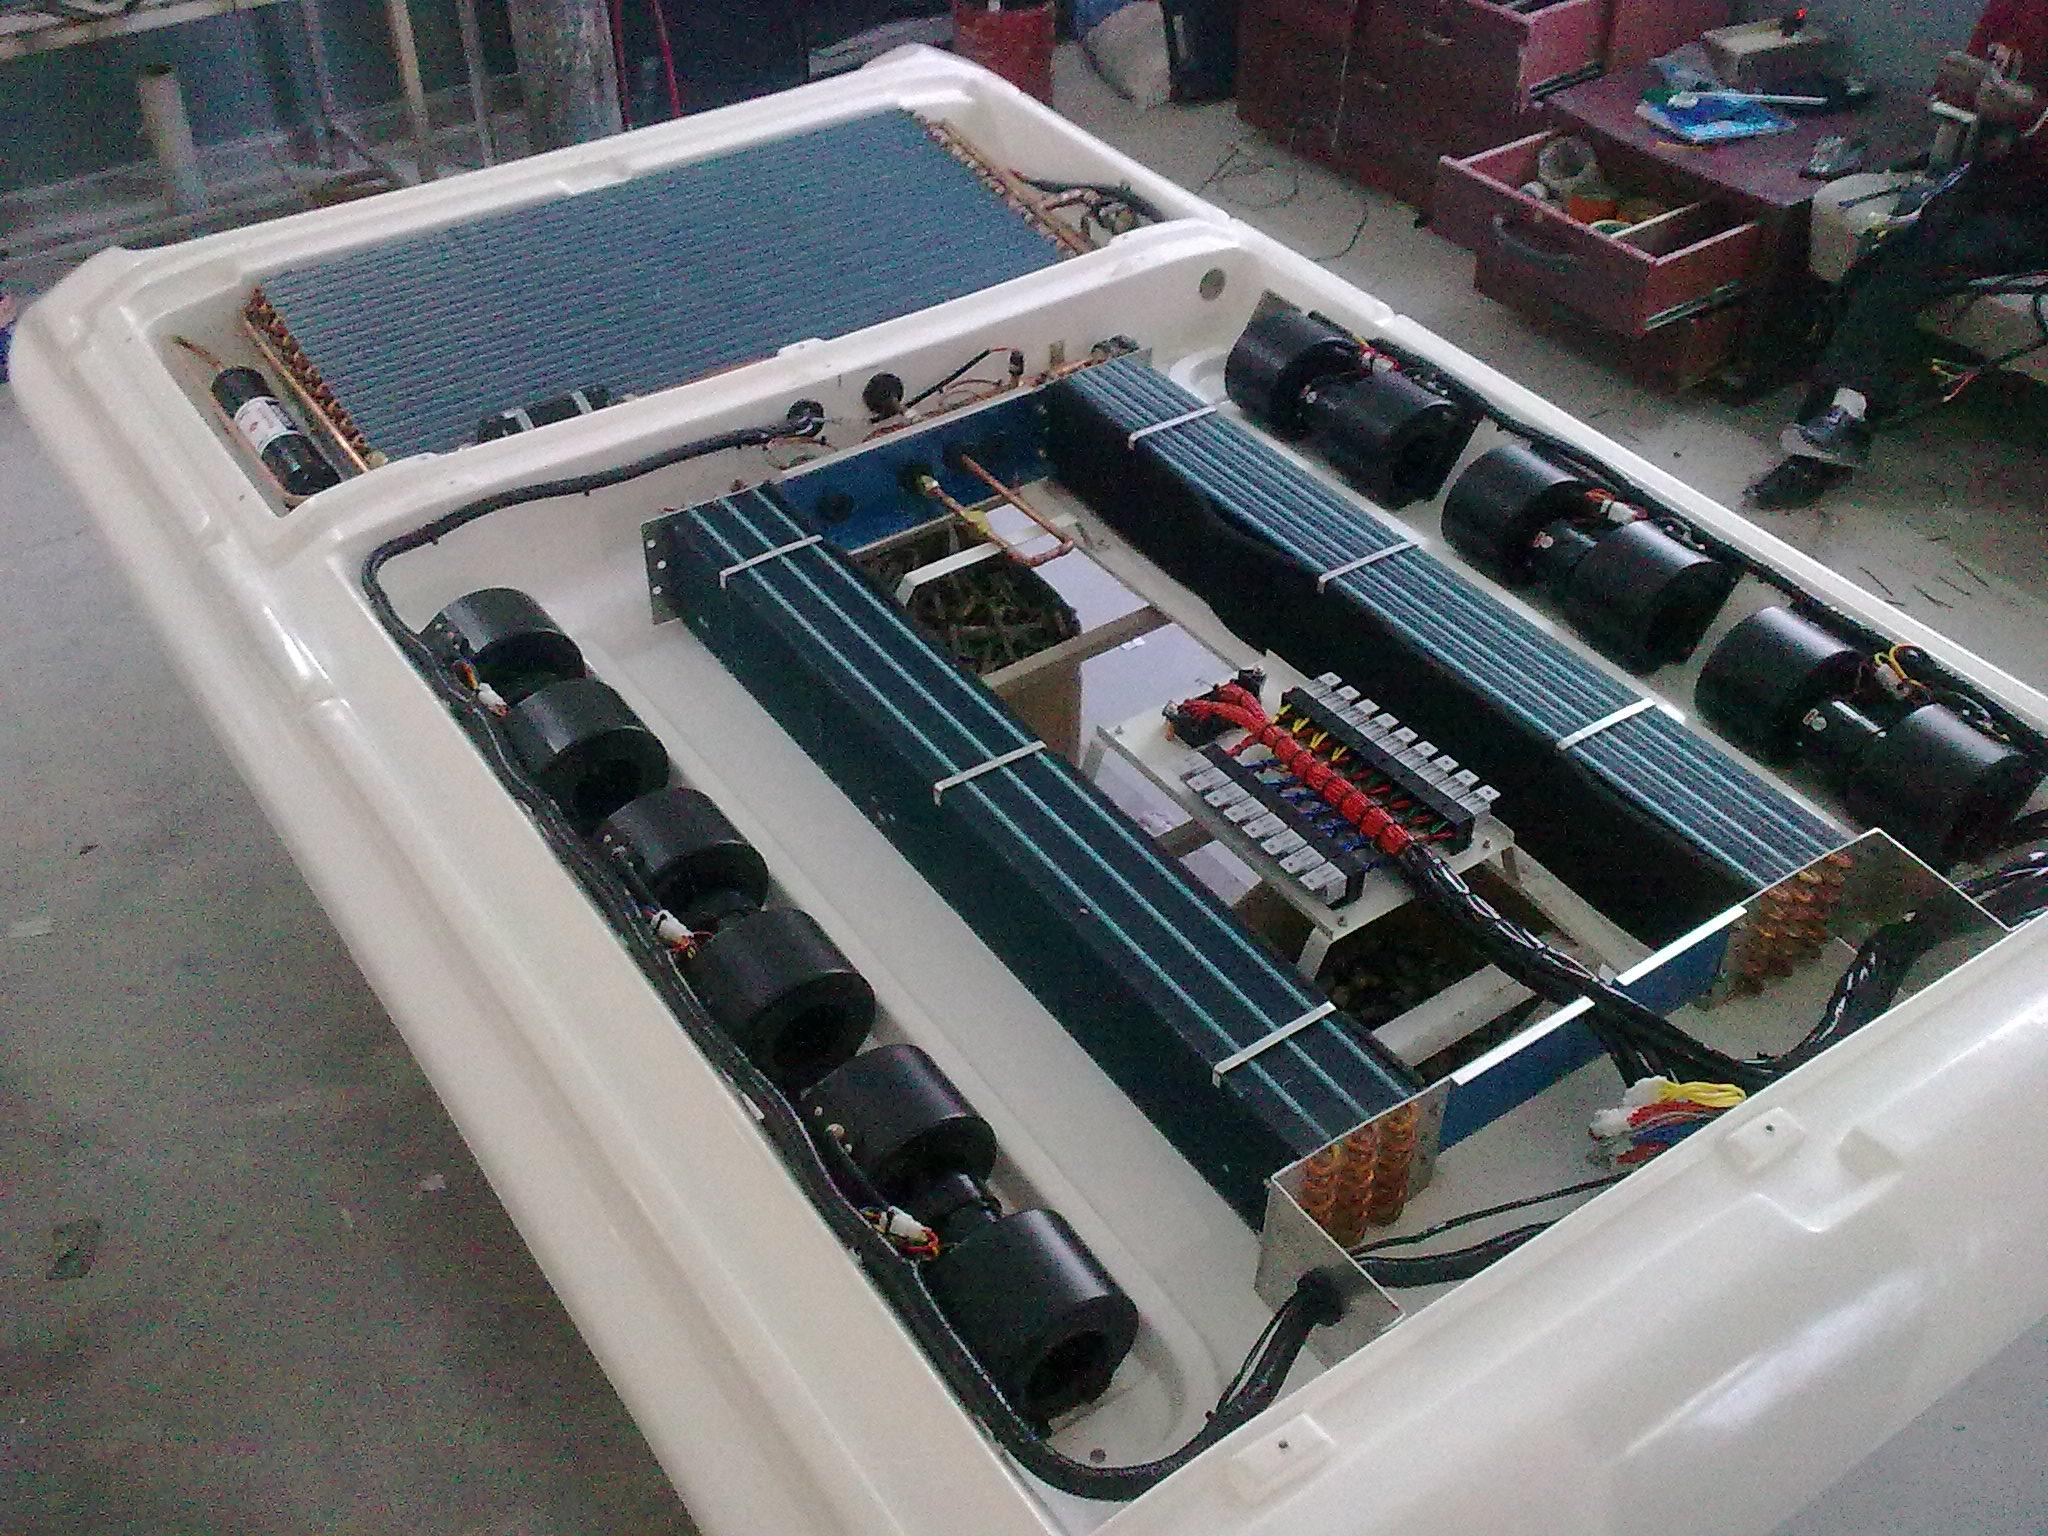 Bus air conditioner installation and service | Qatar Living